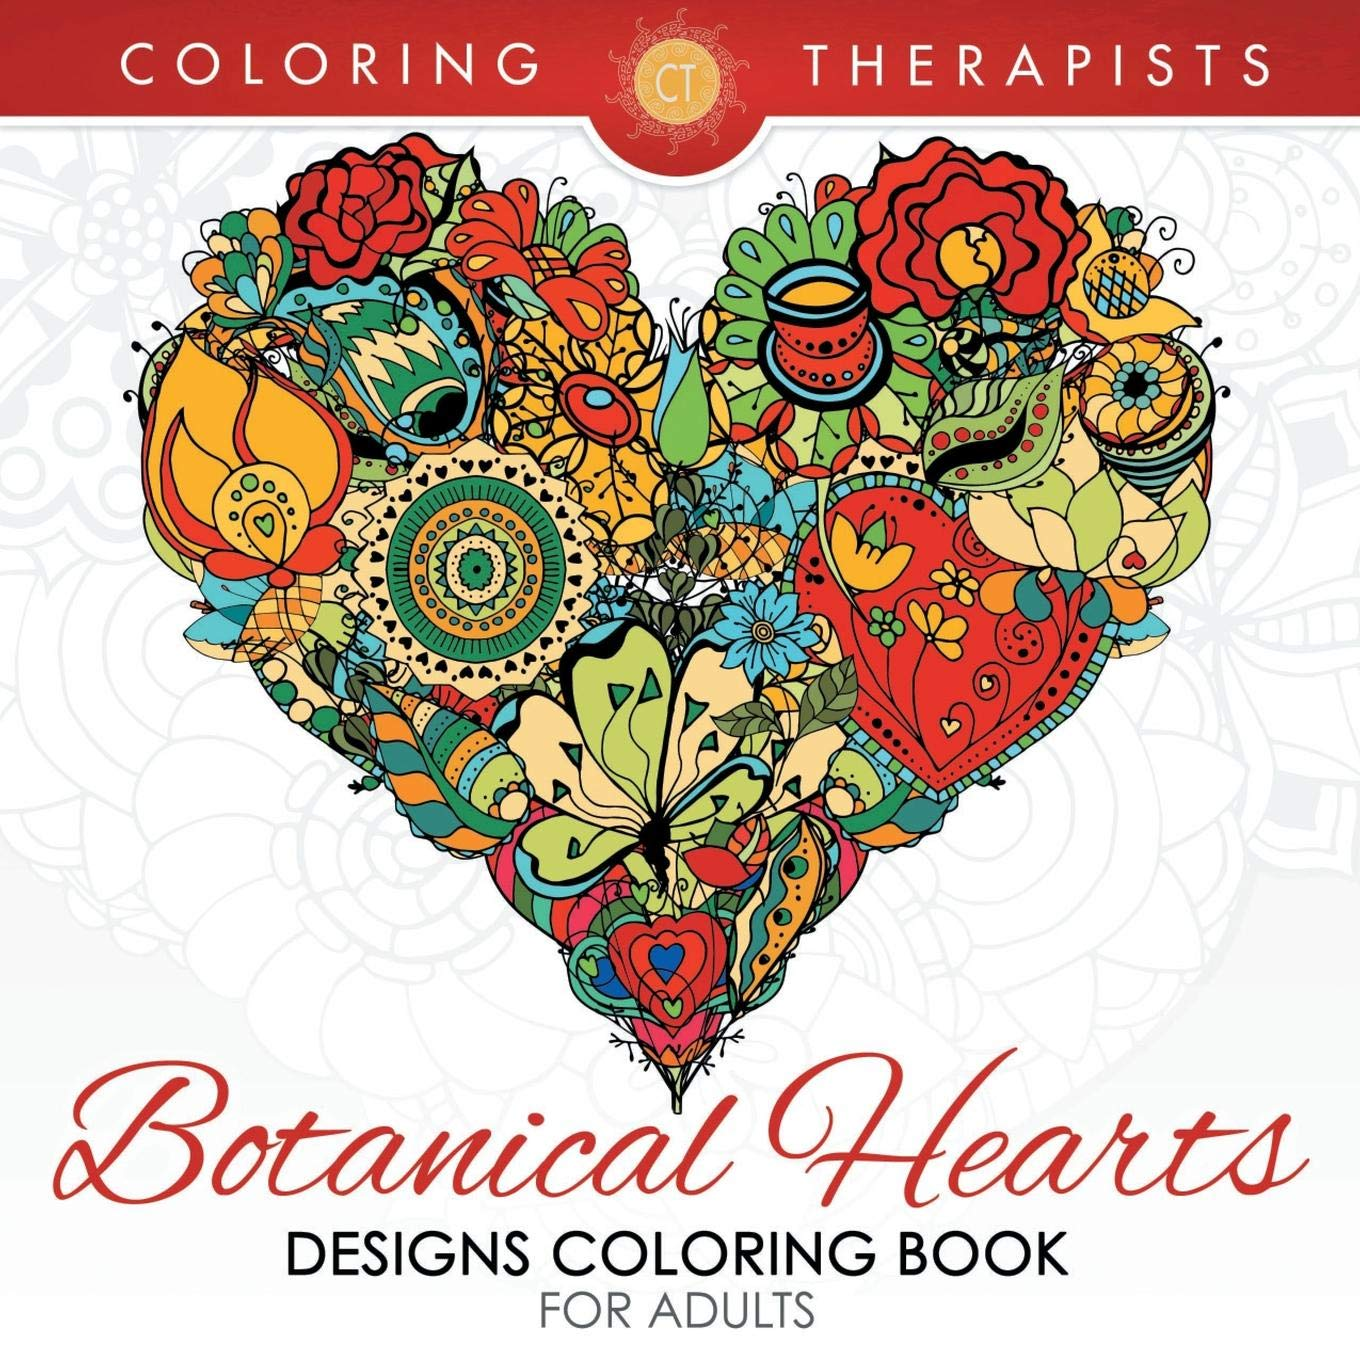 Botanical Hearts Designs Coloring Book For Adults: Amazon.es: Coloring Therapist: Libros en idiomas extranjeros